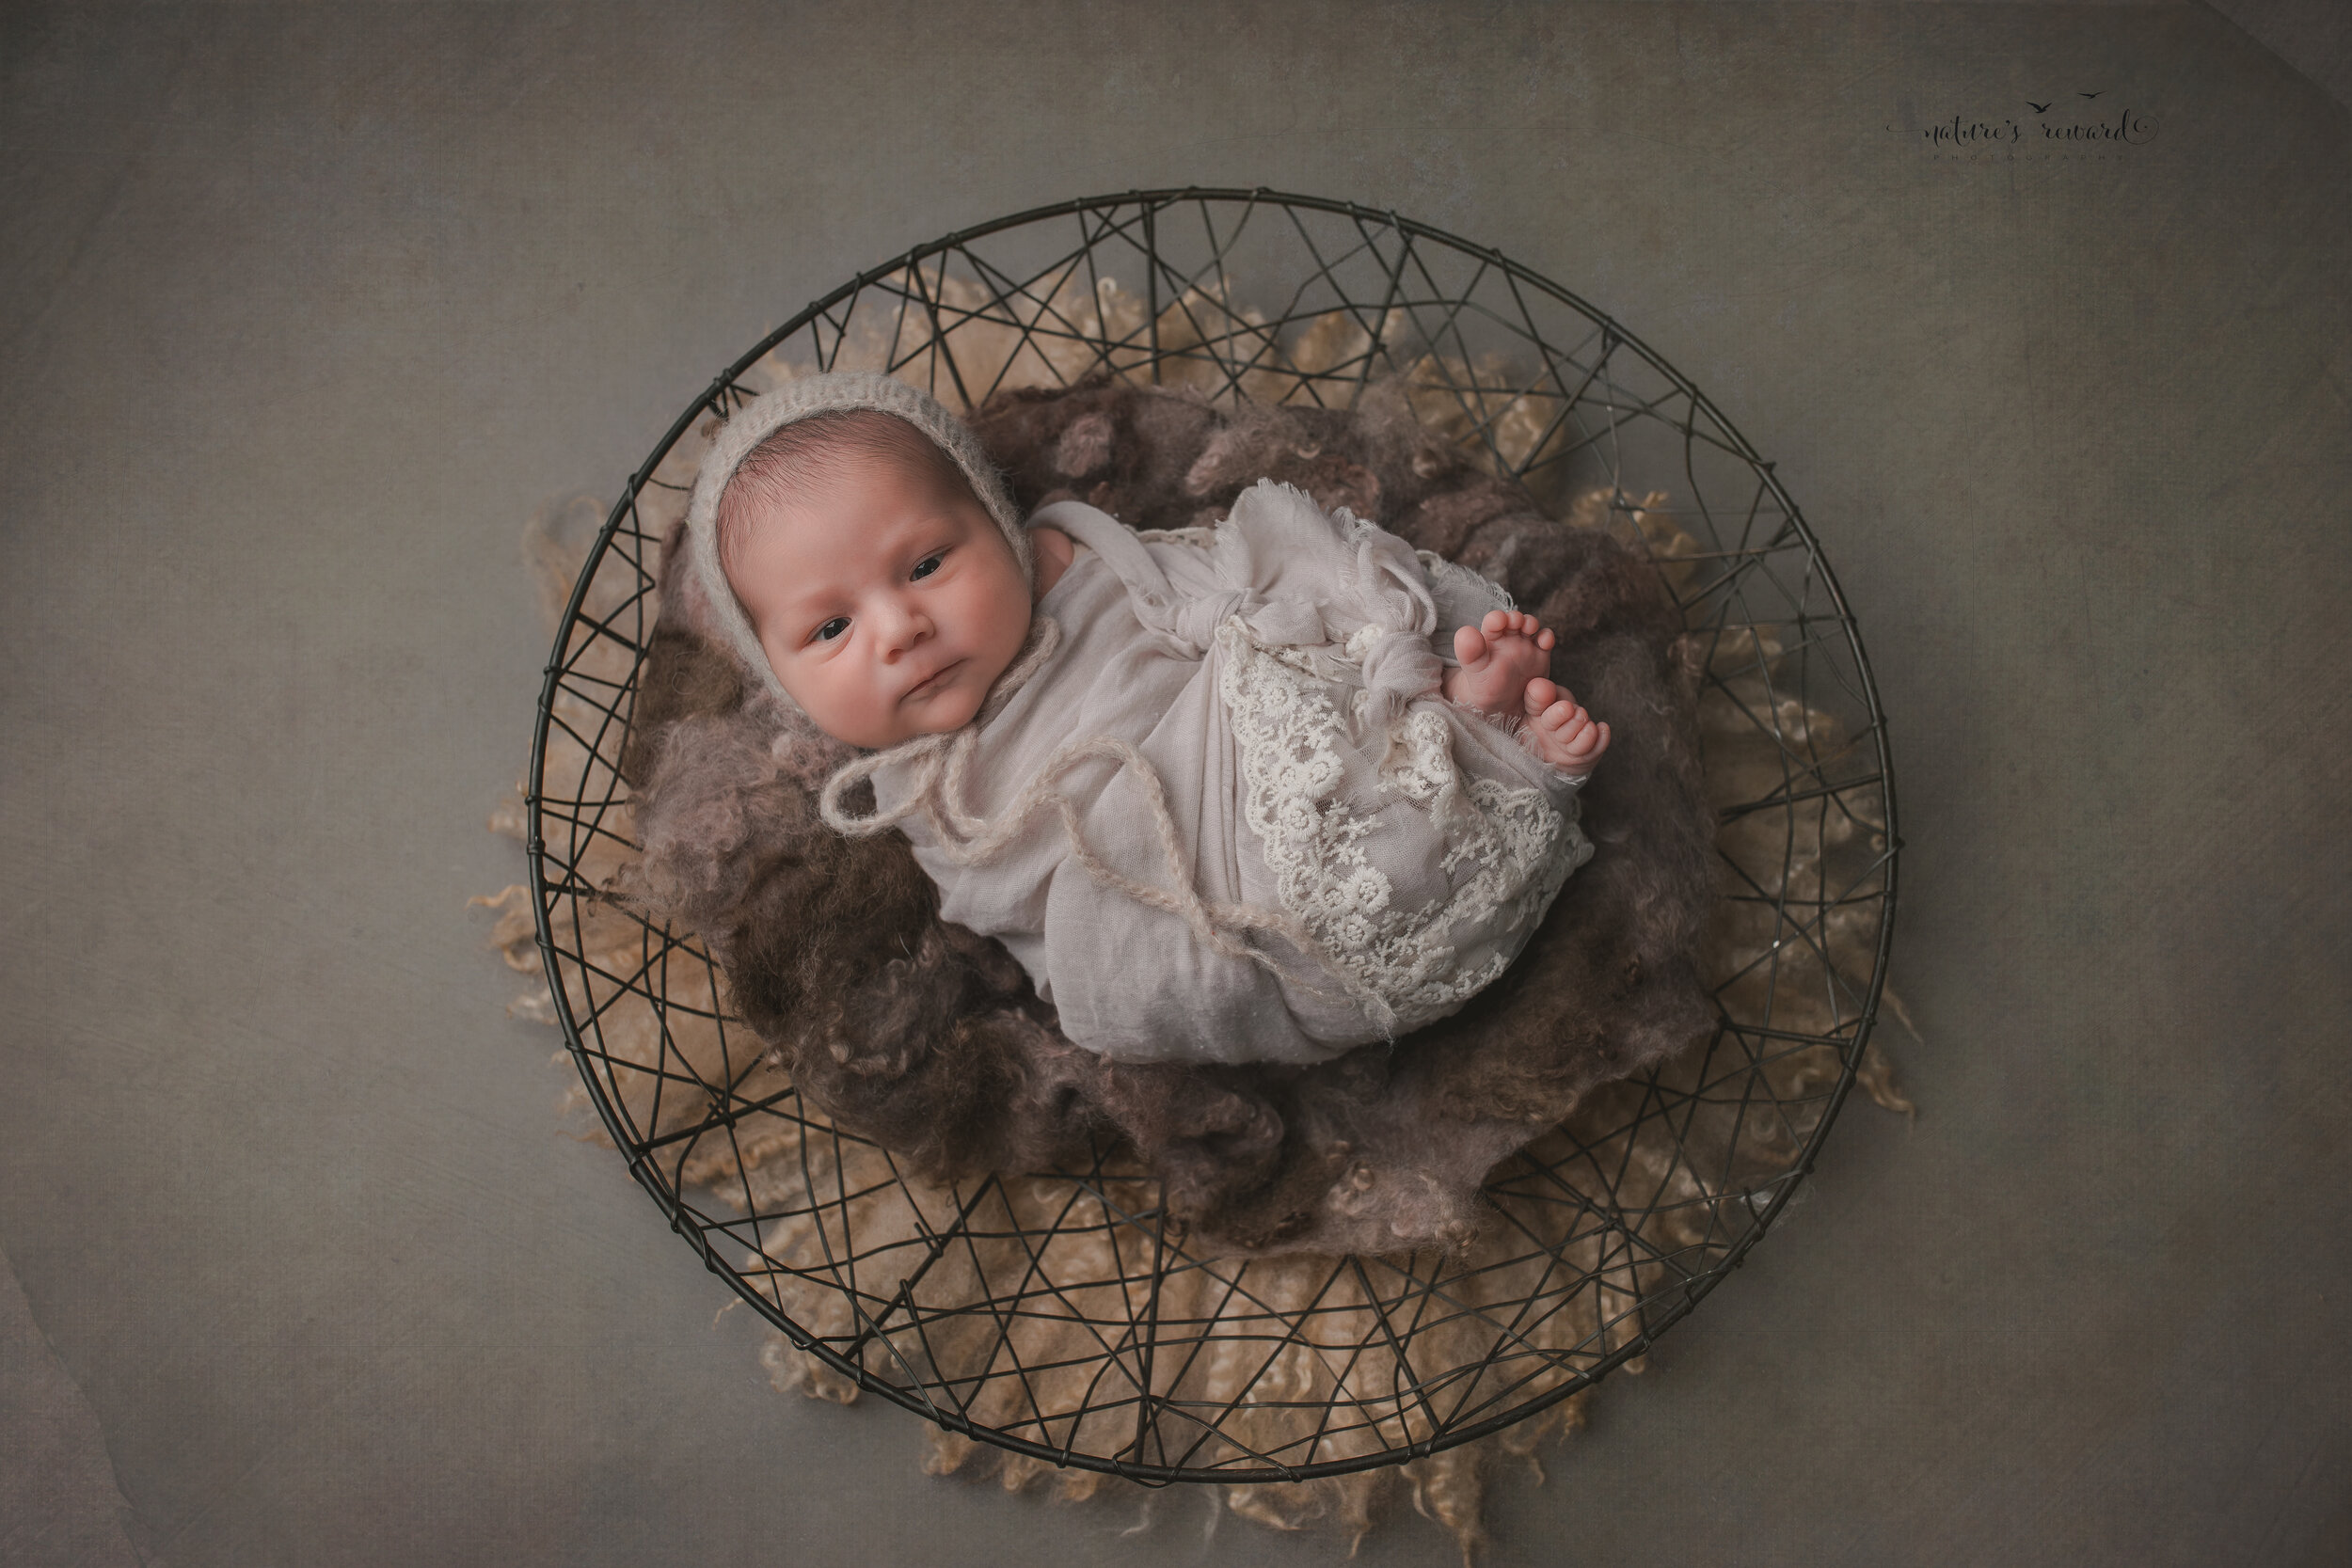 Beautiful newborn baby girl swaddled and in a bowl with her toes showing in this portrait by Nature's Reward Photography